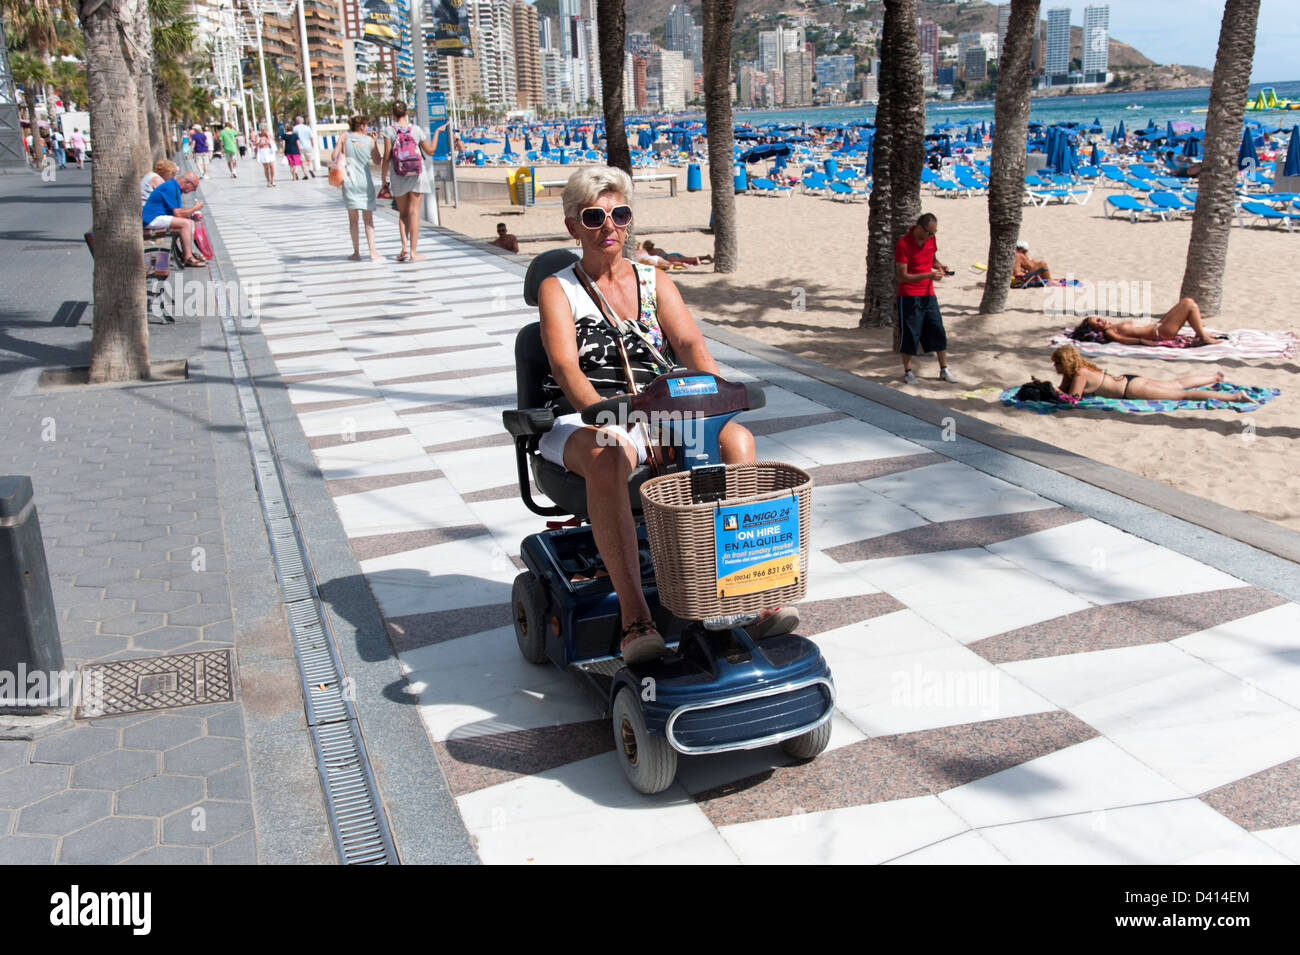 Woman using hired mobility scooter on the promenade, Benidorm, Costa Blanca, Spain - Stock Image